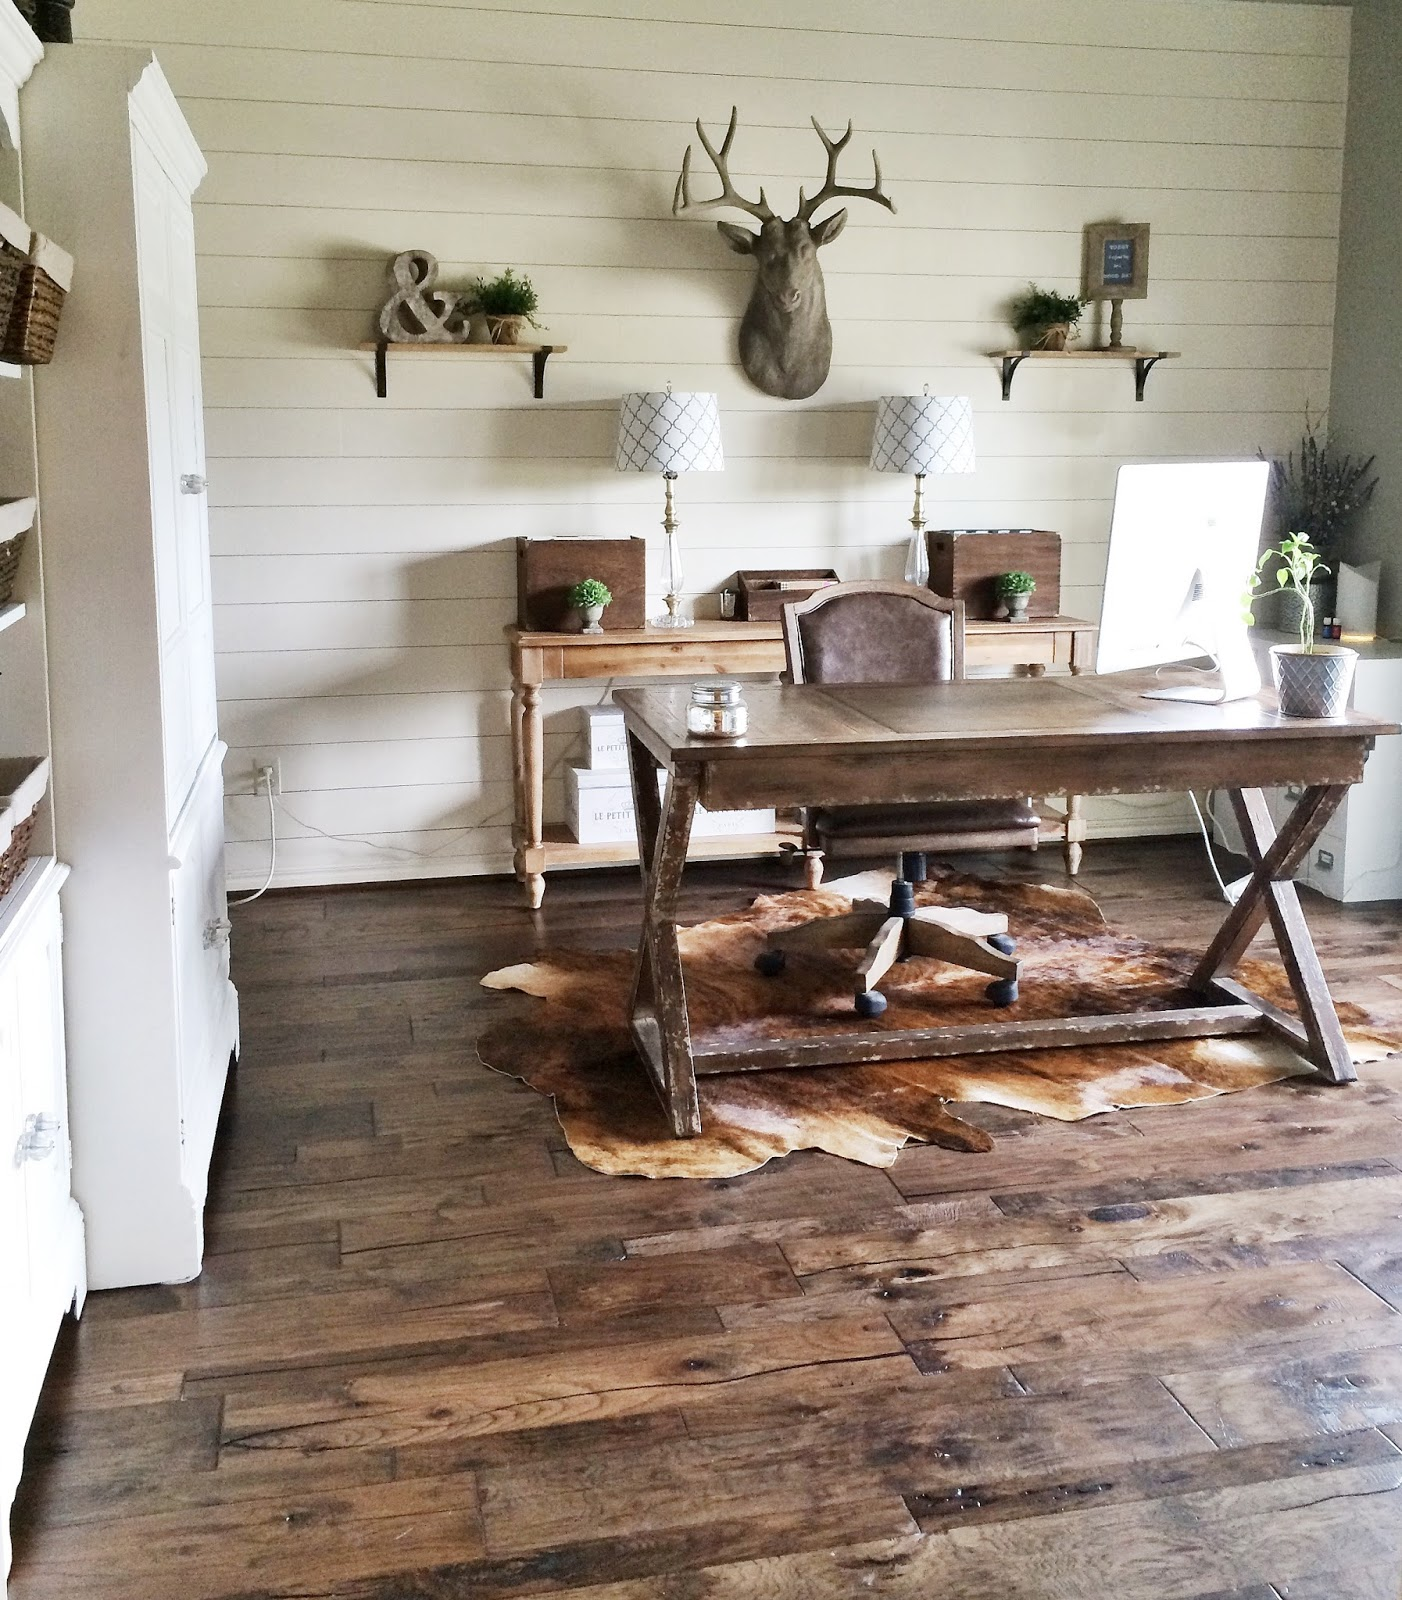 Home Design Ideas Youtube: How To Install A Shiplap Wall + Rustic